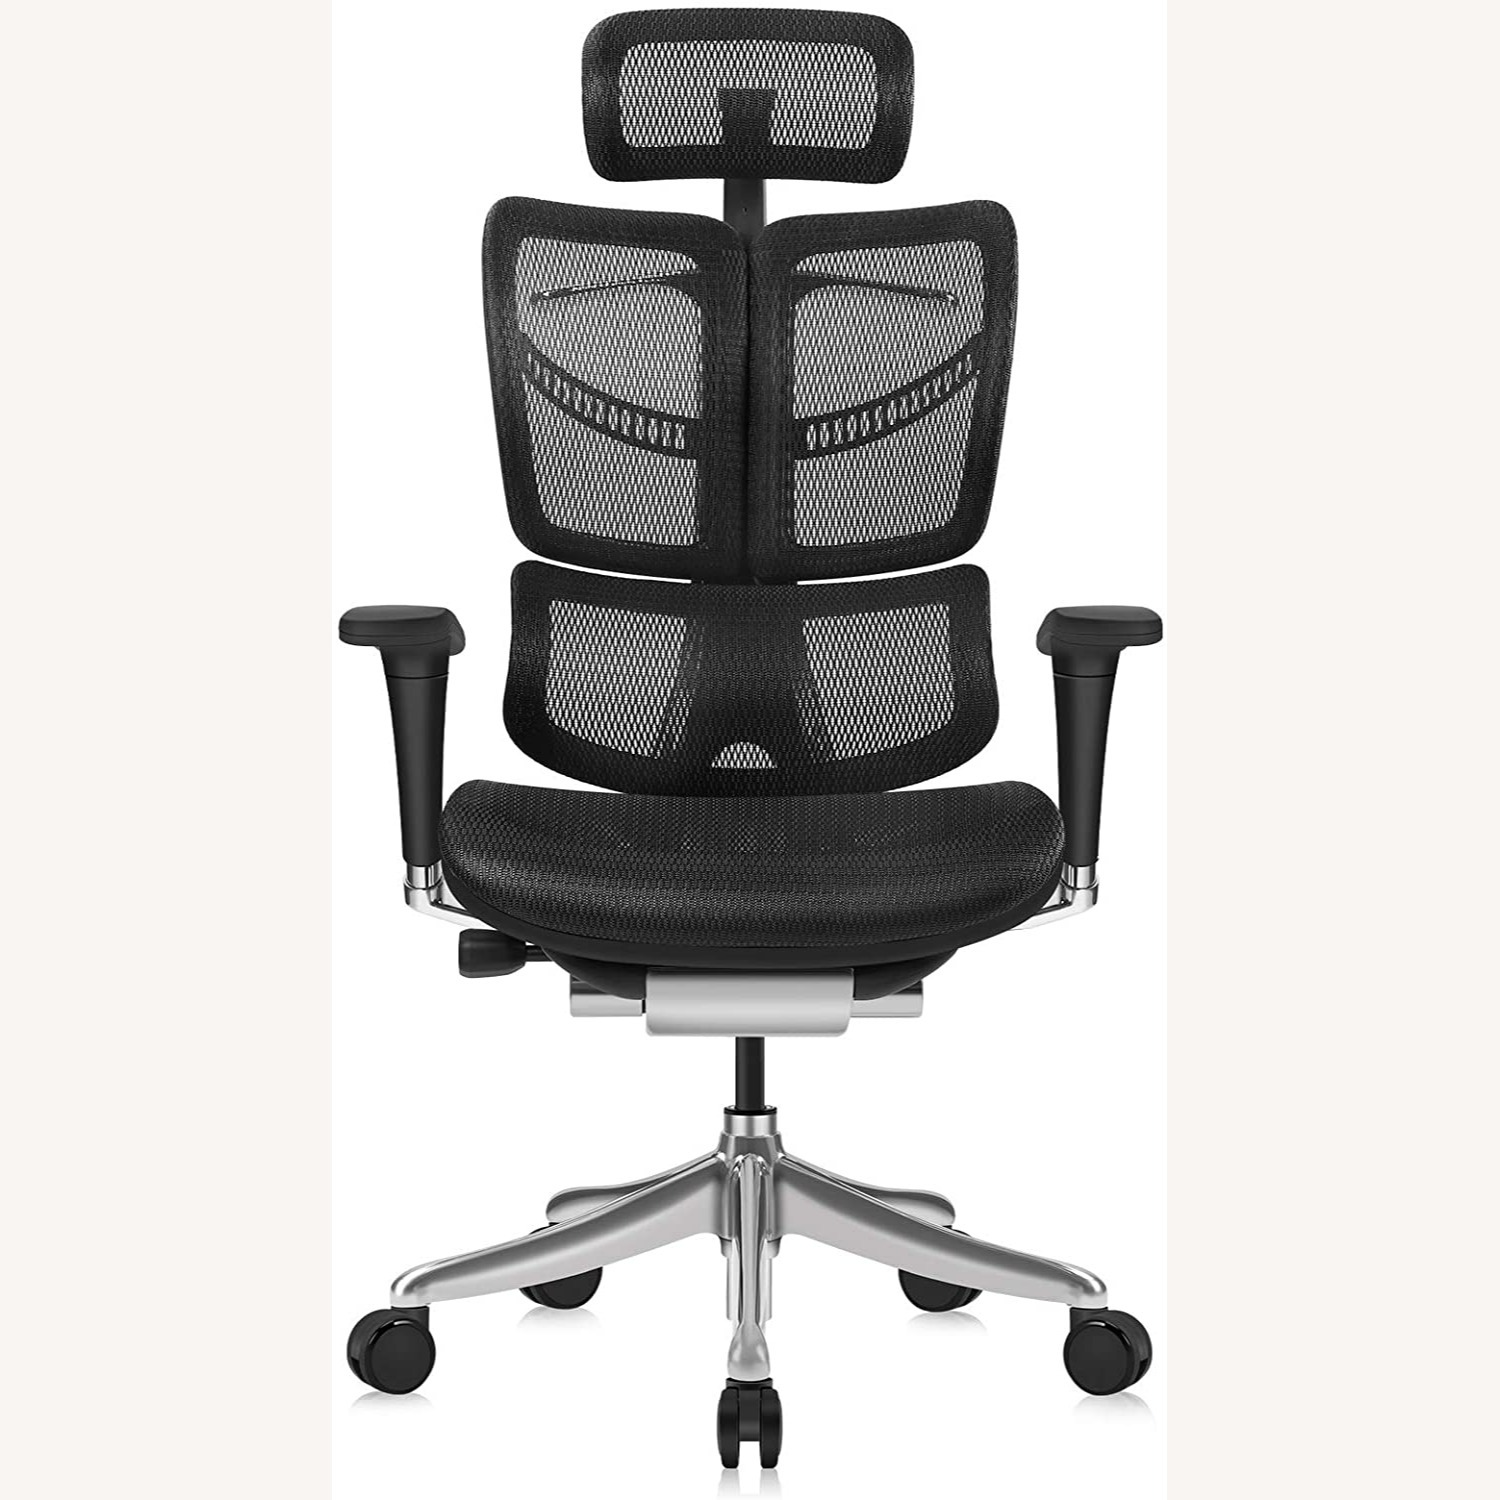 Ergonomic Office Chair with Headrest - image-6